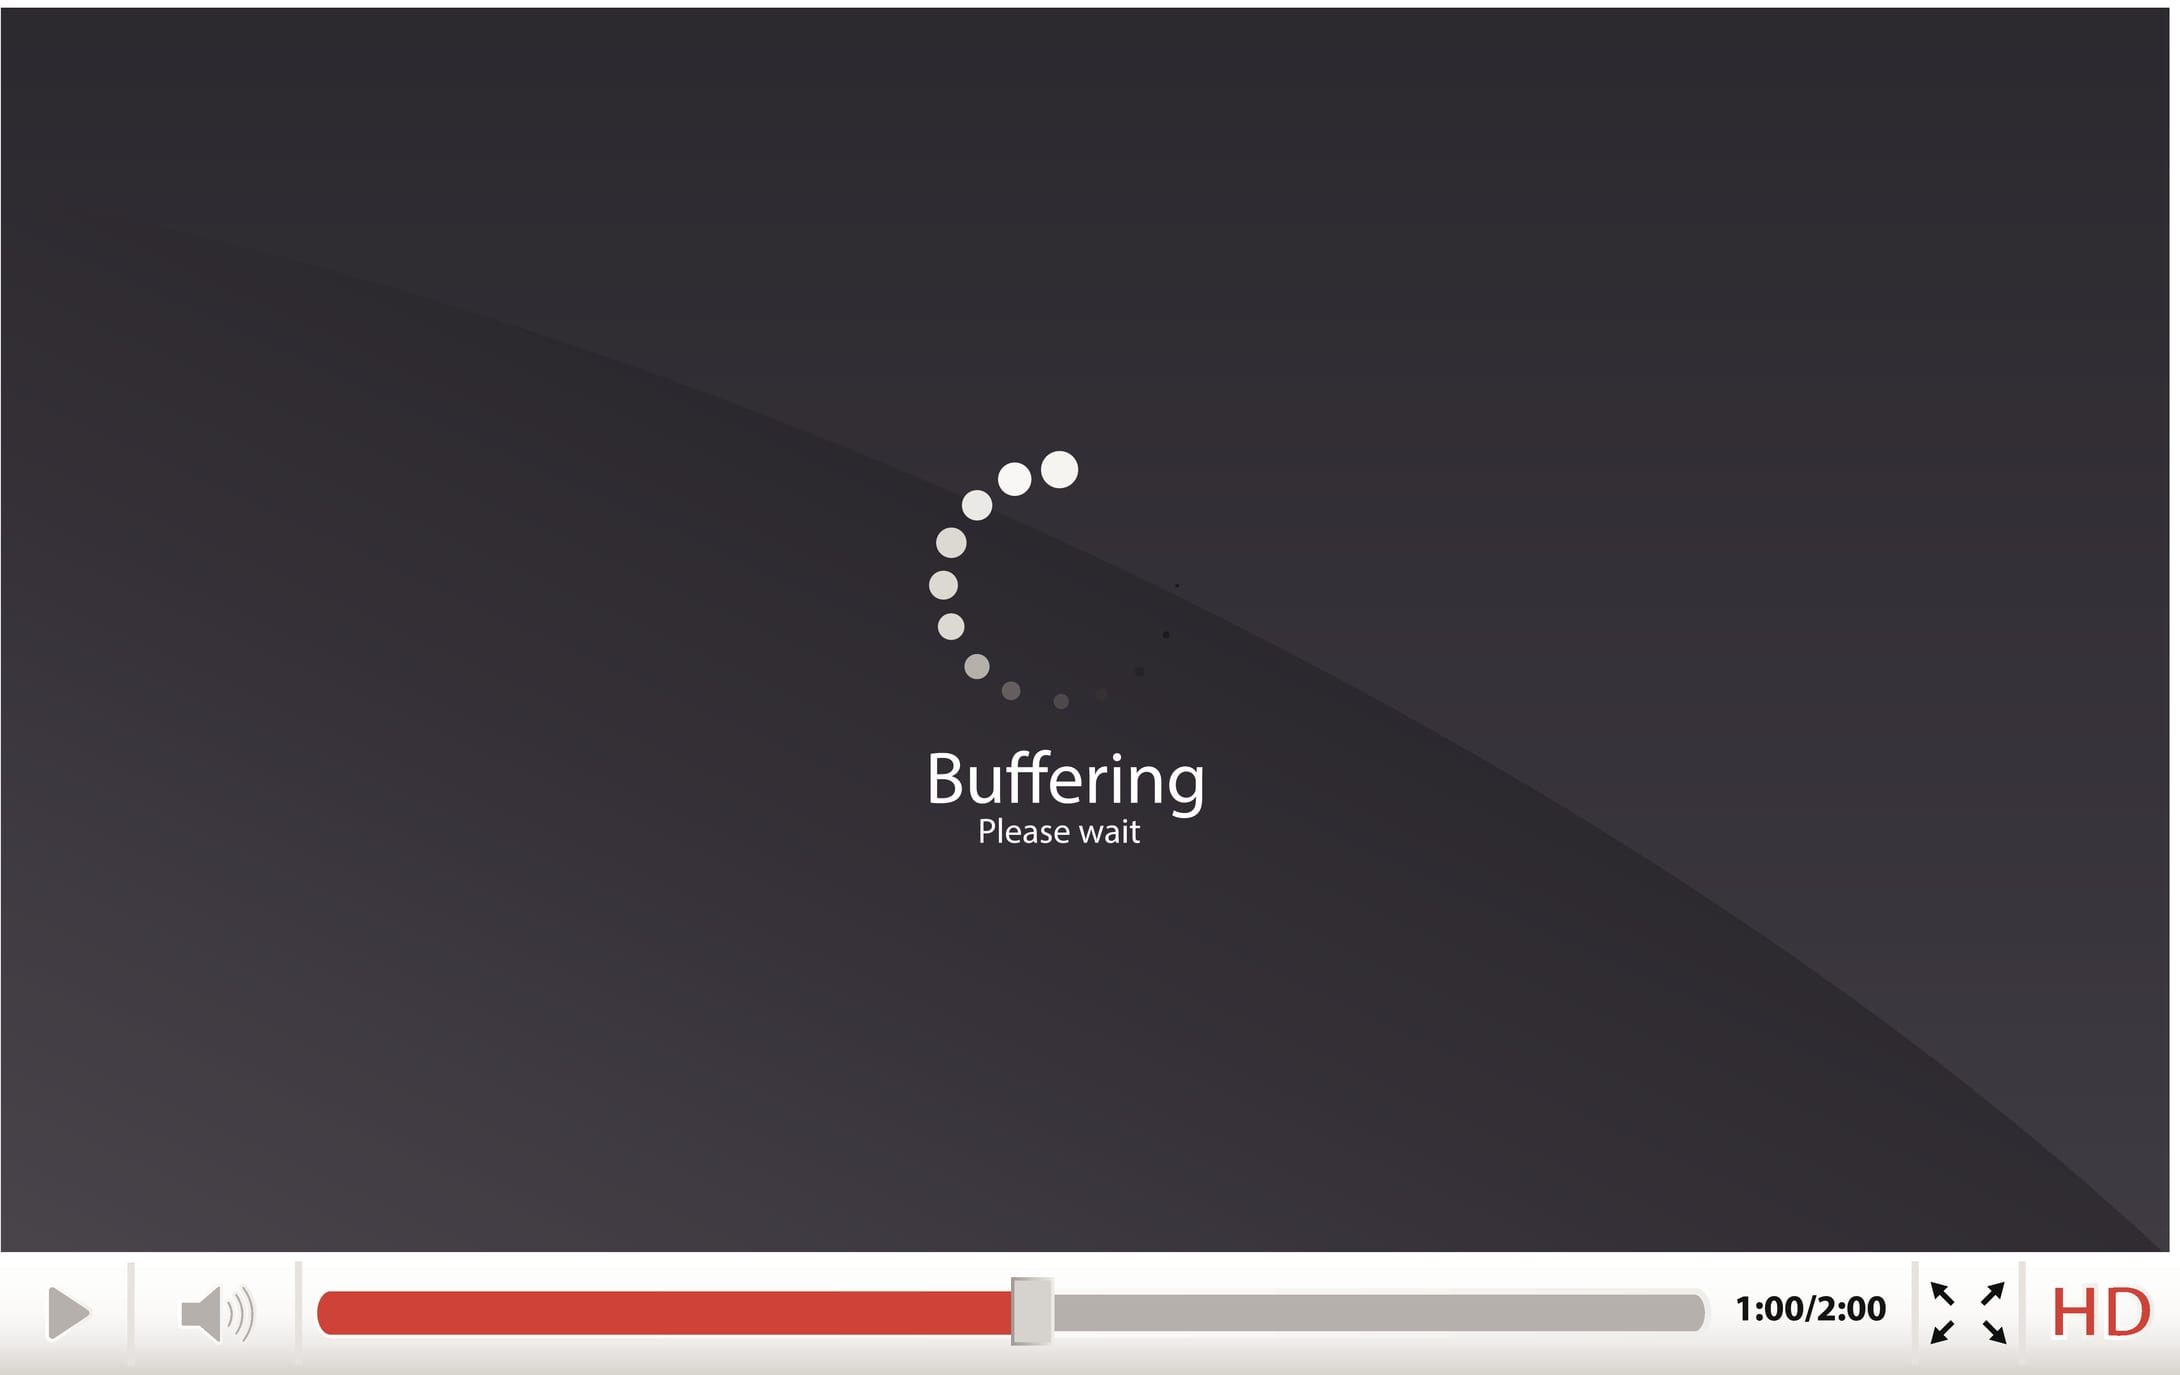 What Are The Pros and Cons of HTTP Live Streaming HLS - reduce buffering